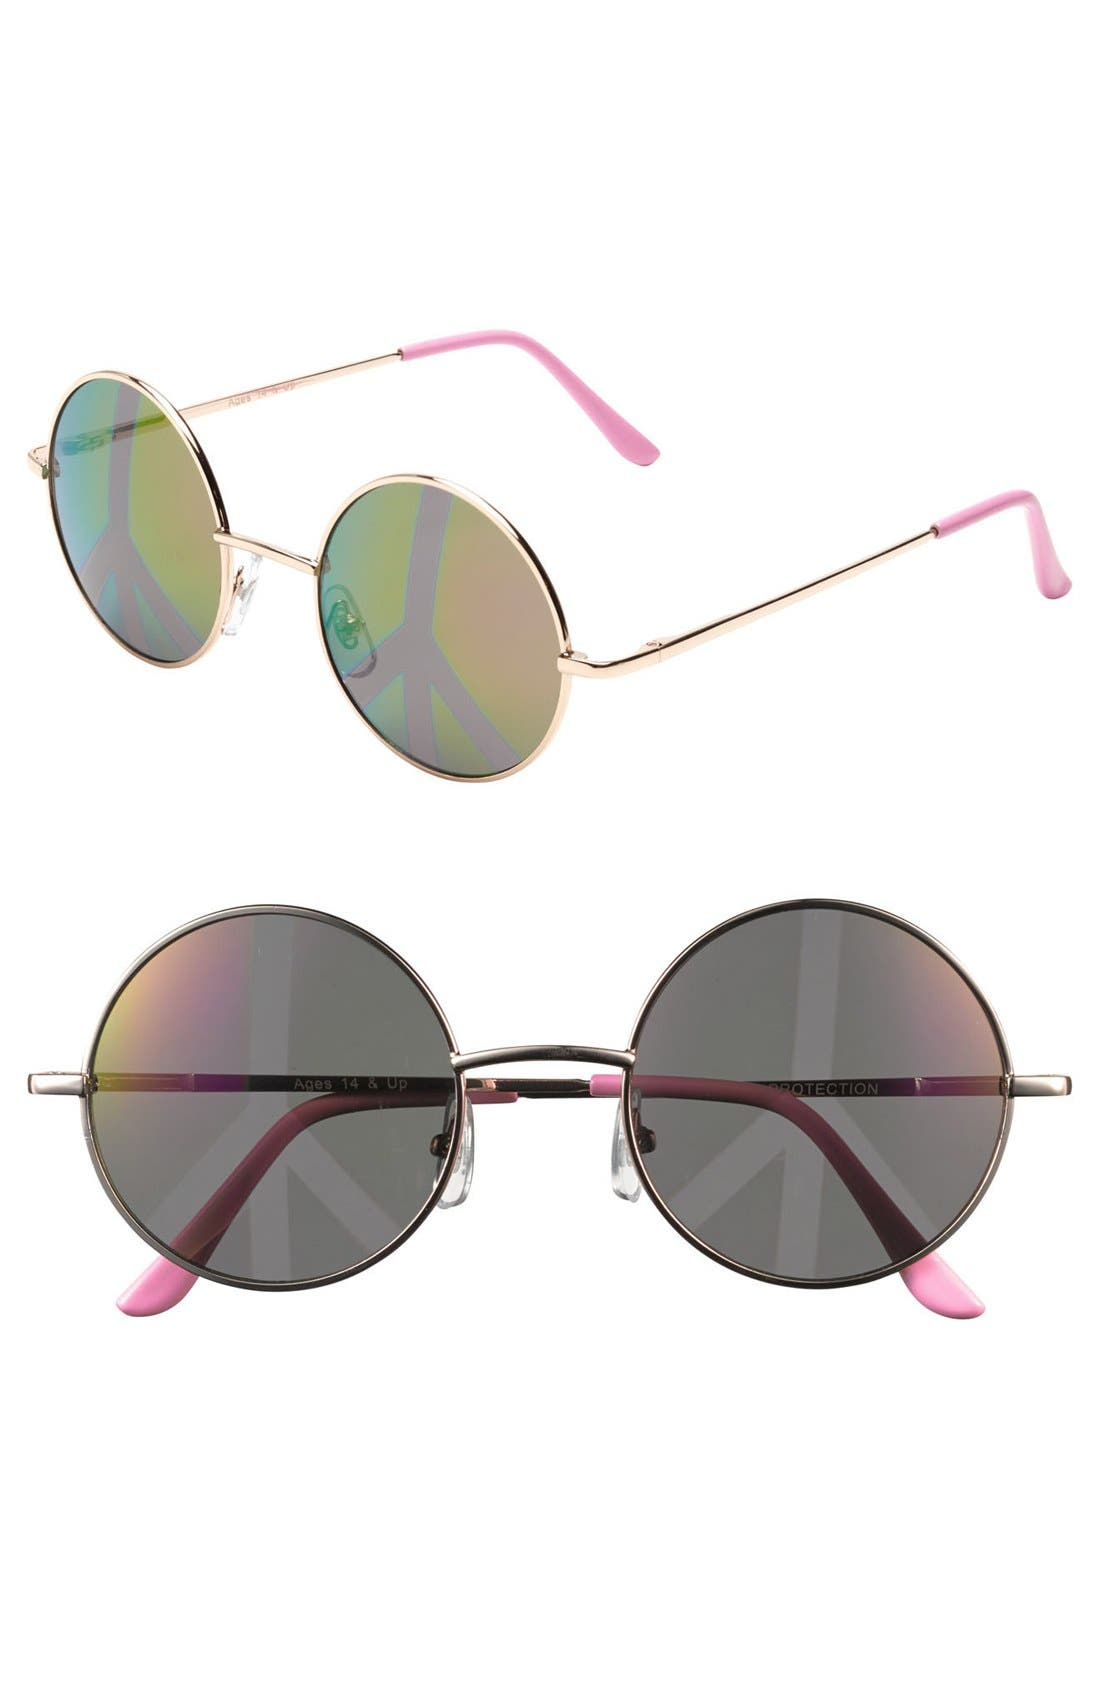 Alternate Image 1 Selected - FE NY 'Love Bug' Sunglasses